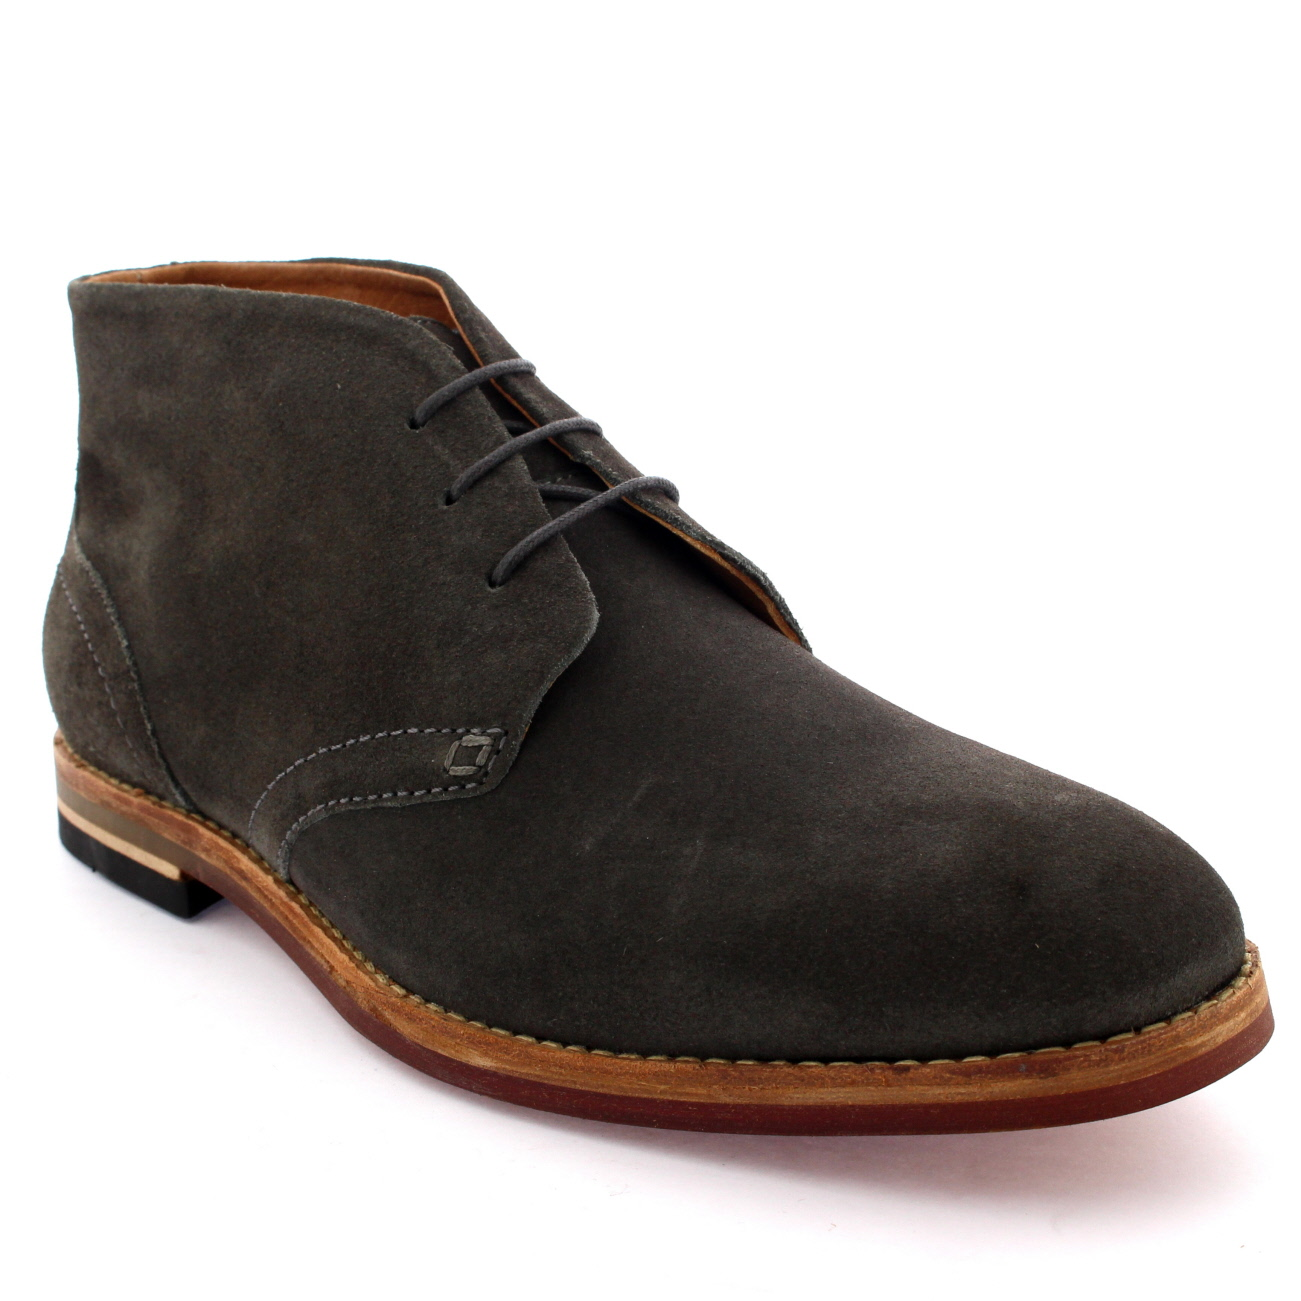 Tommy Hilfiger Essential Suede Chukka Boots. Update your casual looks with the Essential Suede boot from Tommy Hilfiger. Showcasing a soft suede upper a round toe and lace fastenings.